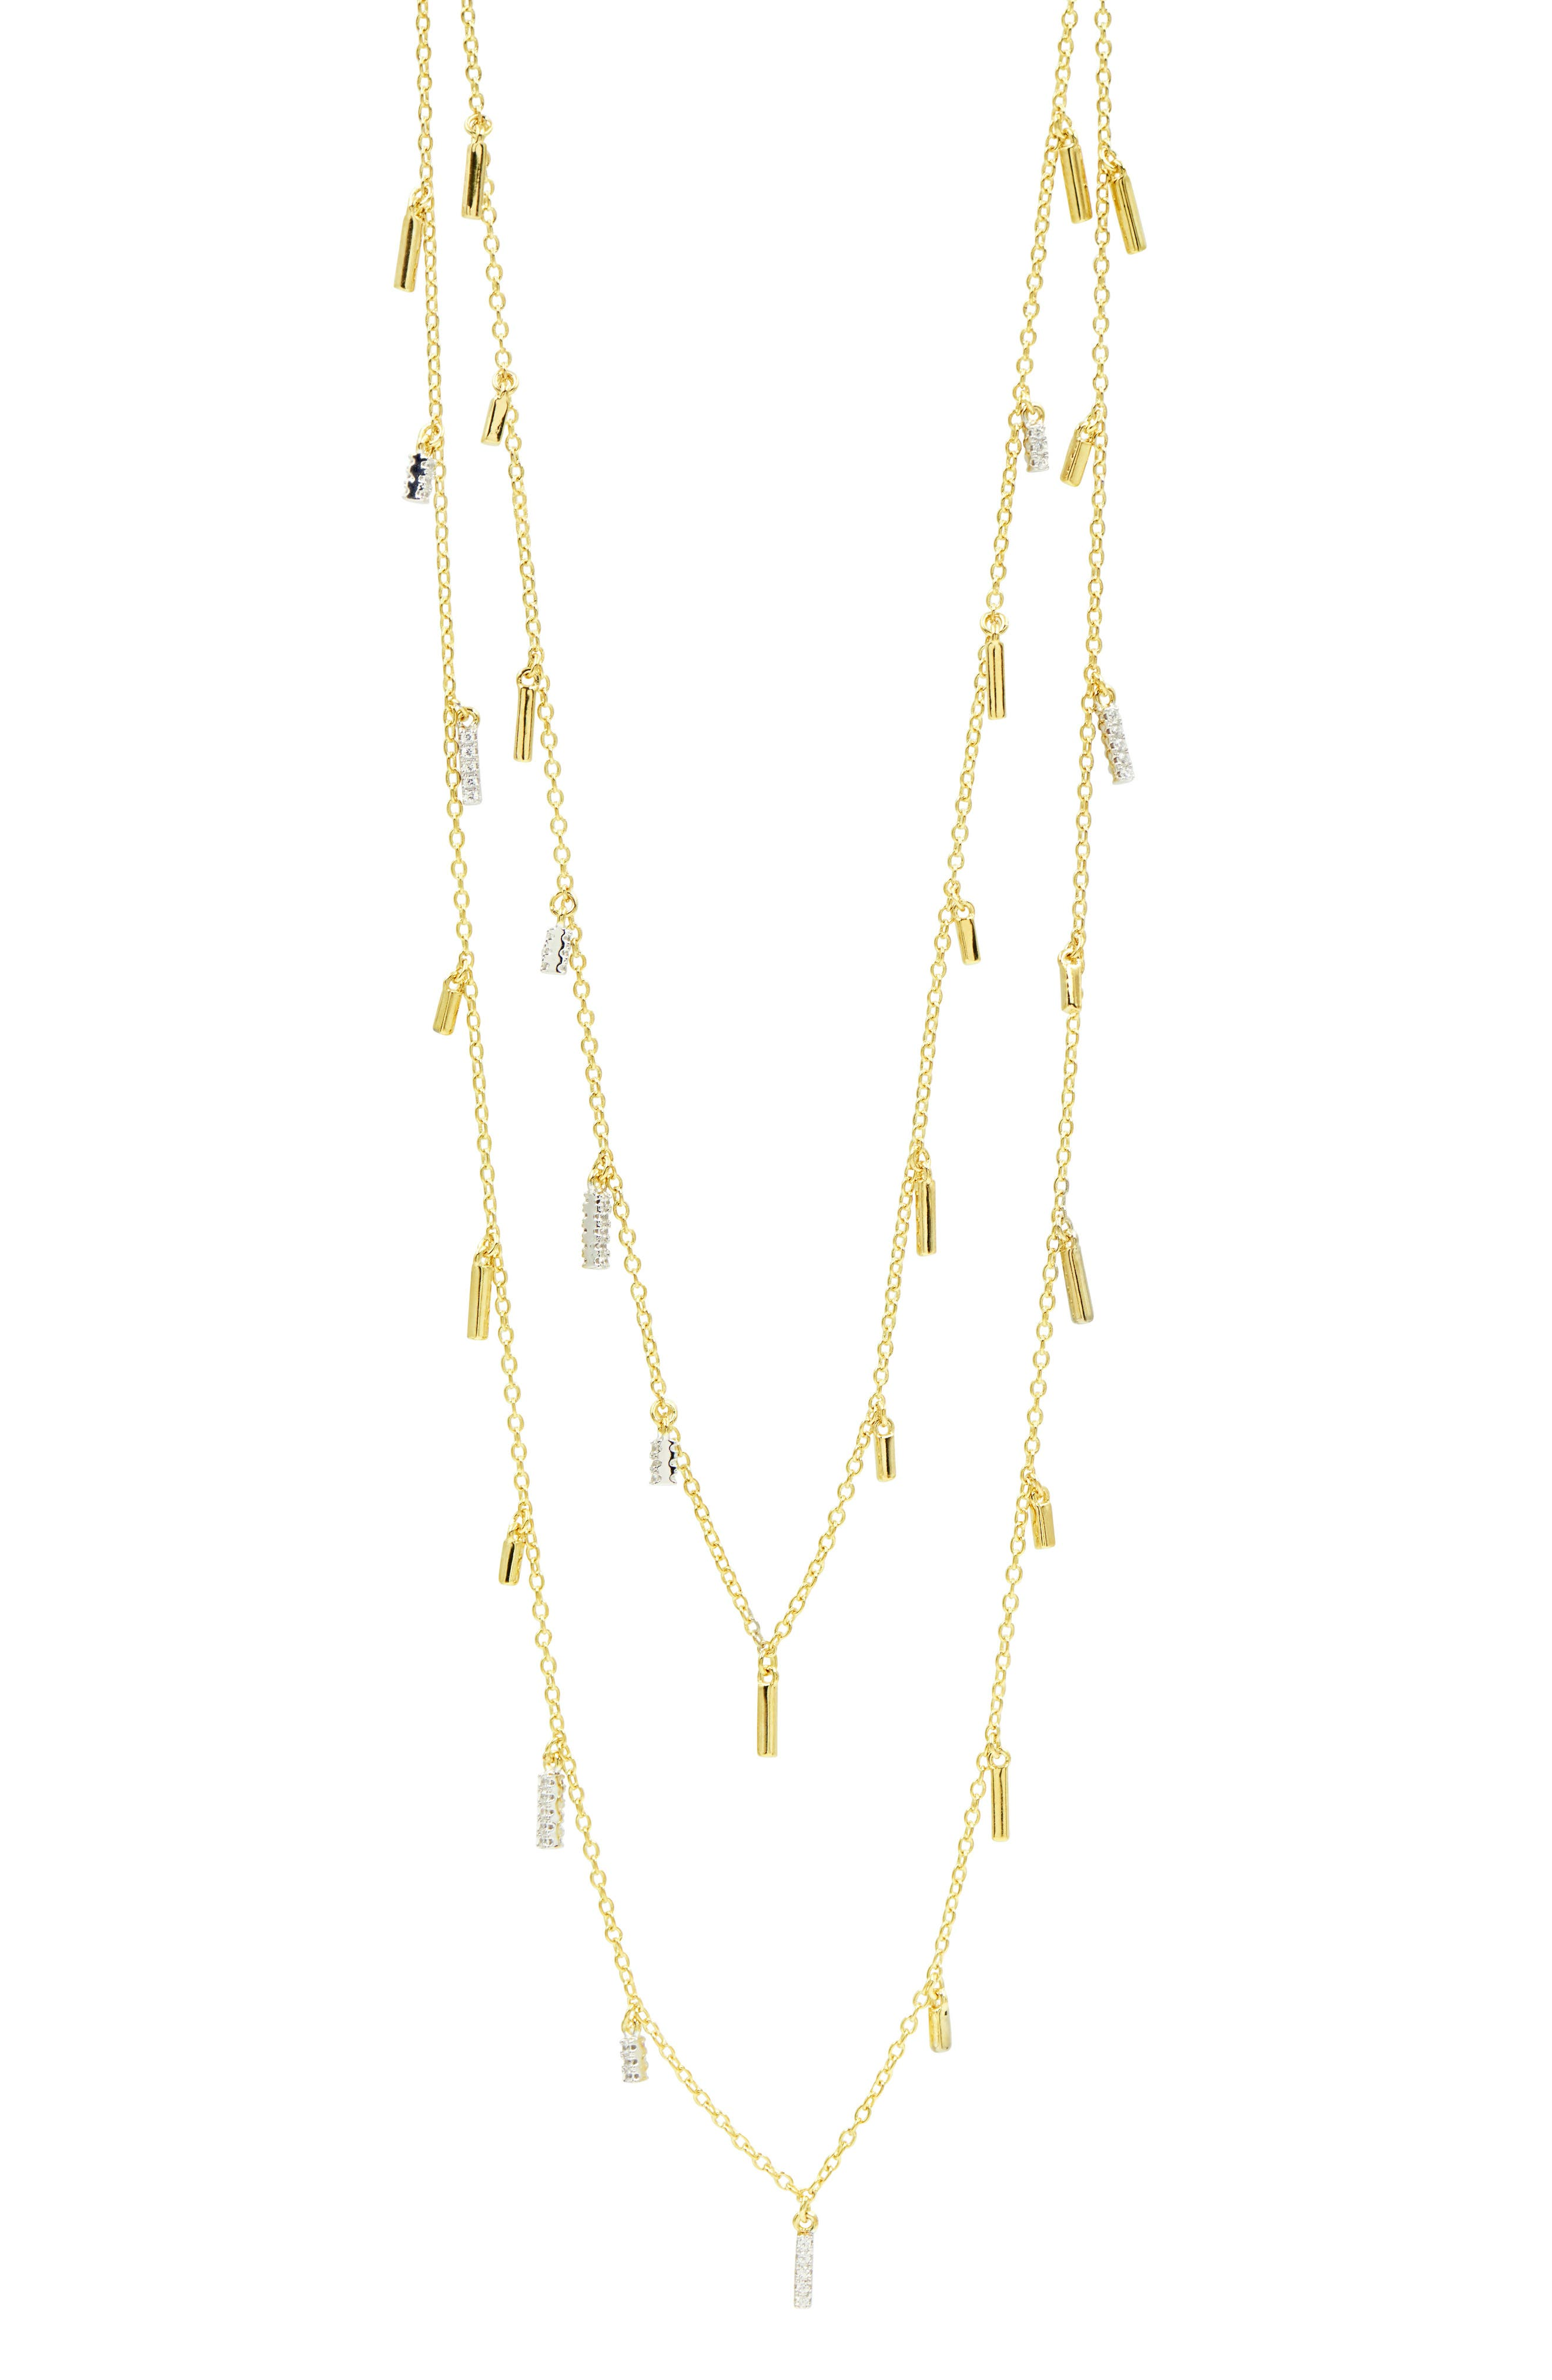 Radiance Droplet Cubic Zirconia Station Necklace,                         Main,                         color, Silver/ Gold